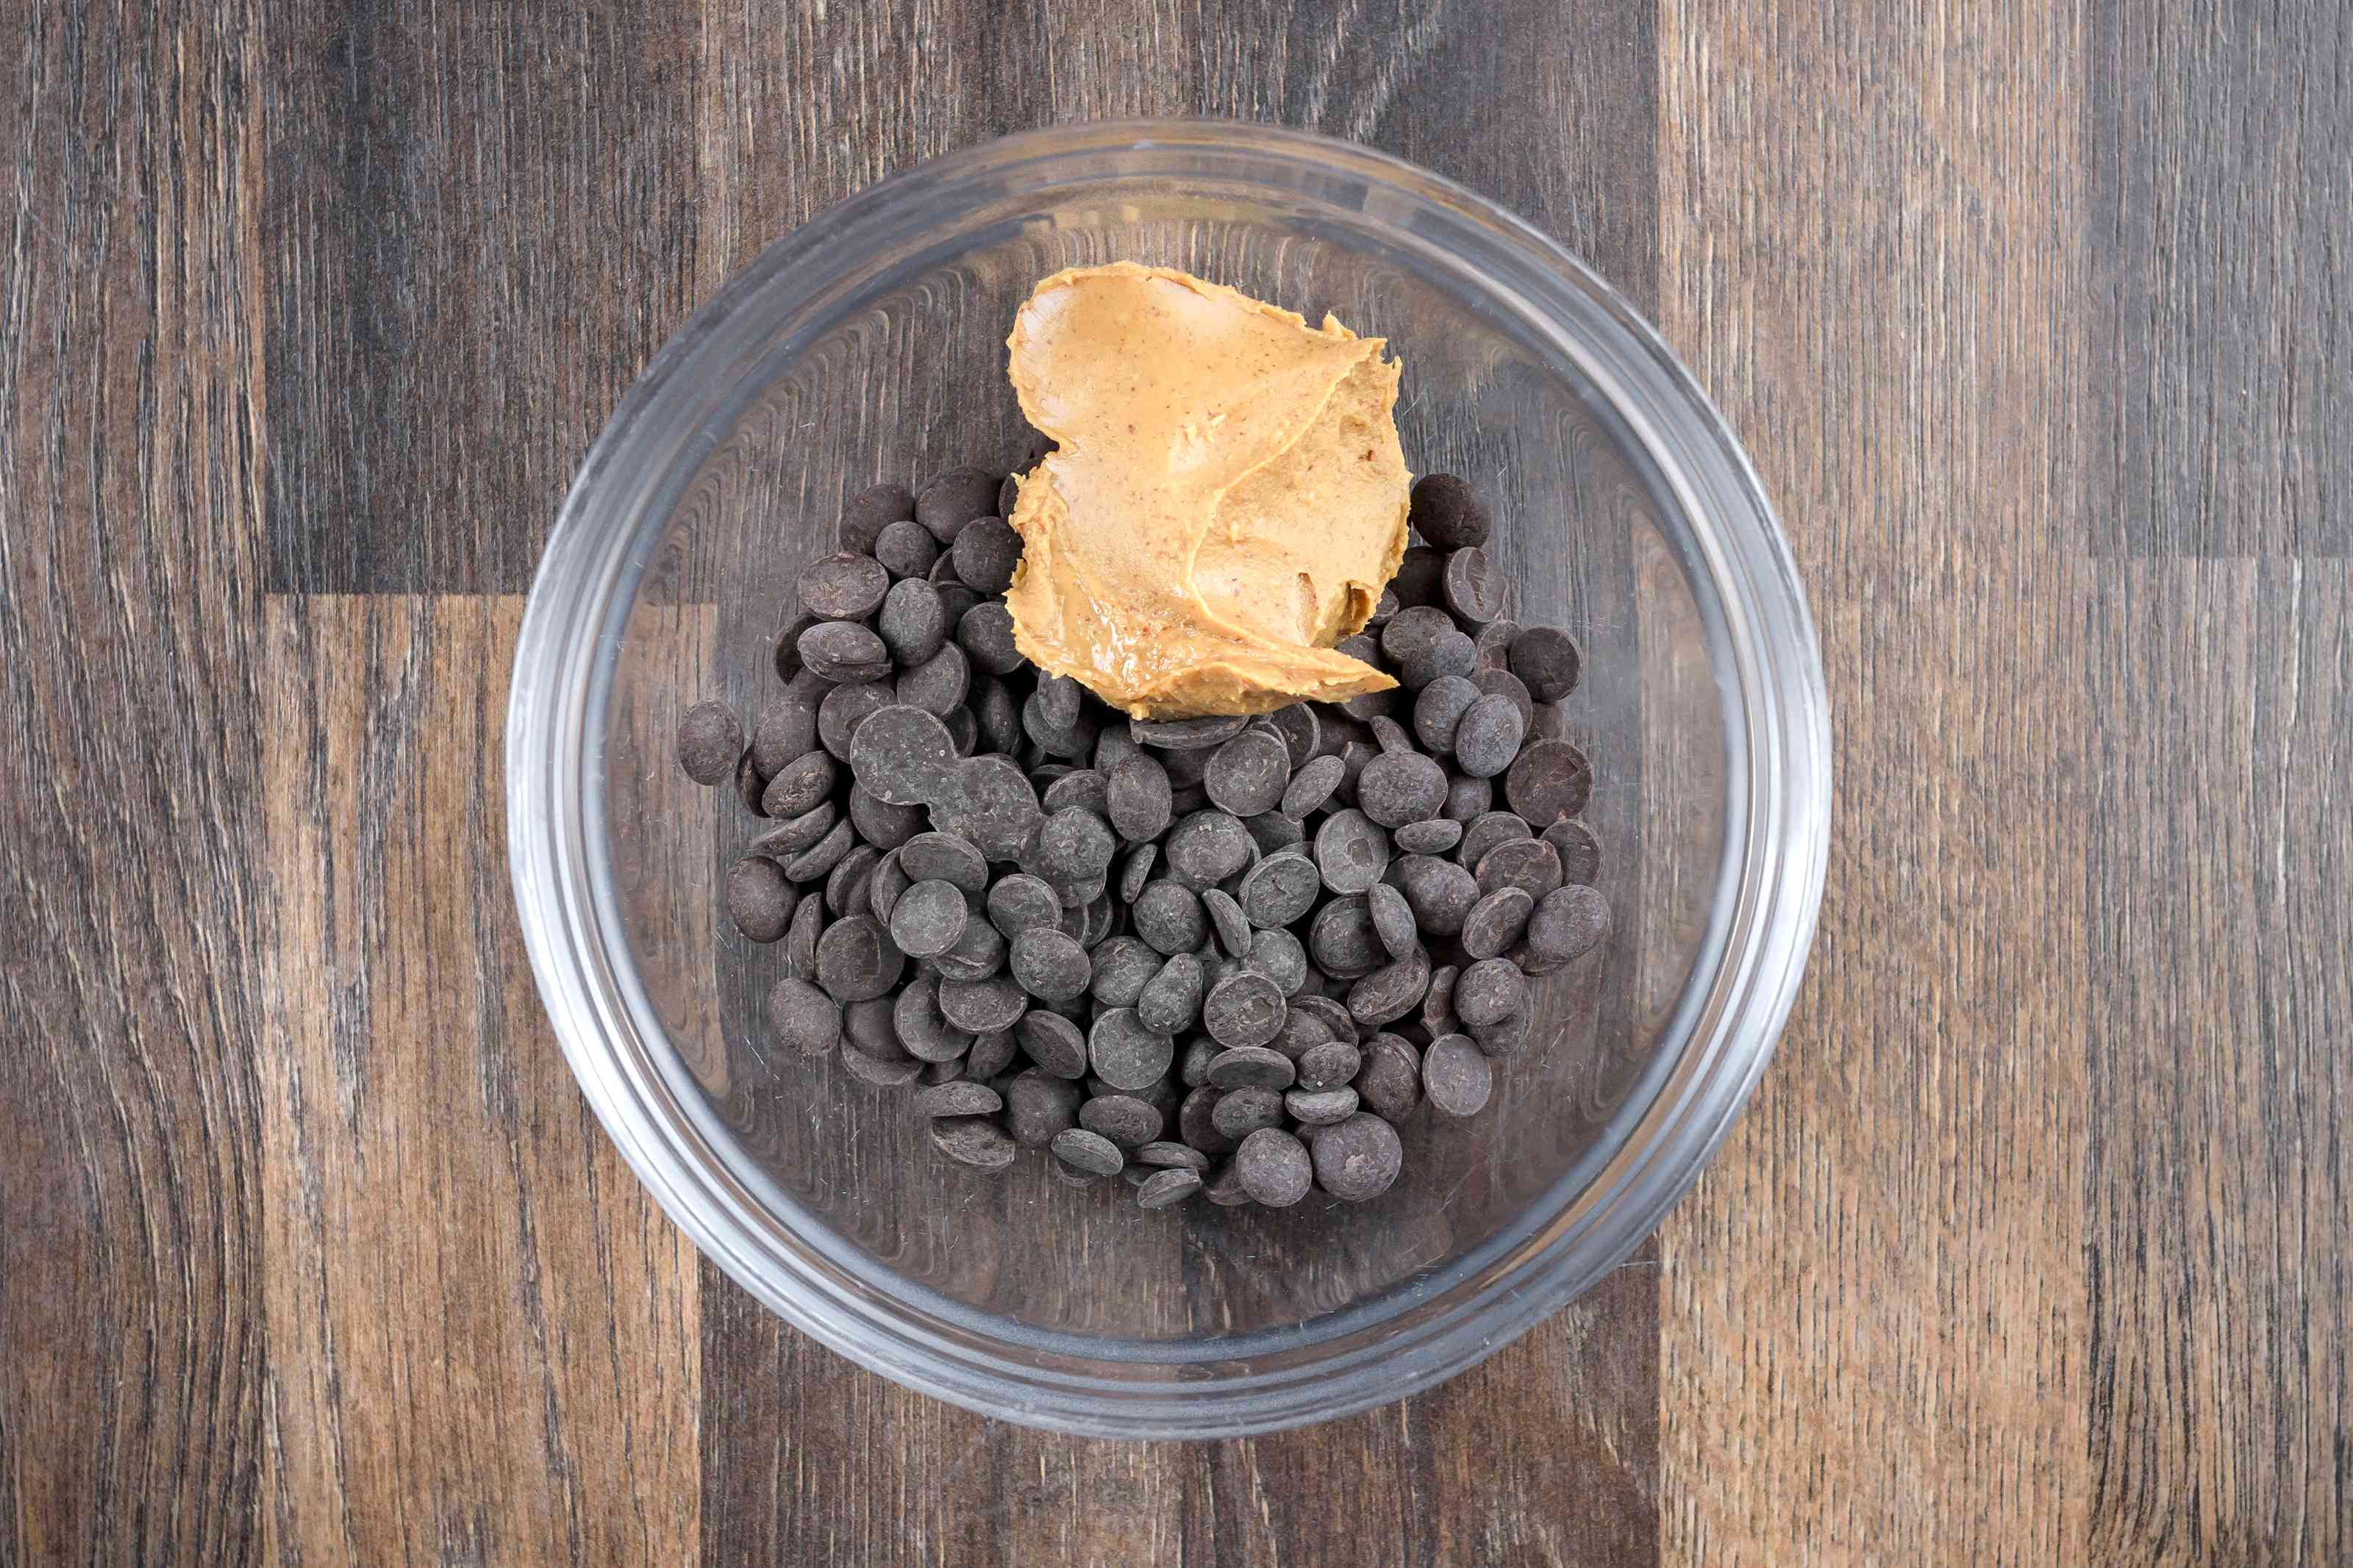 Combine chocolate chips and peanut butter